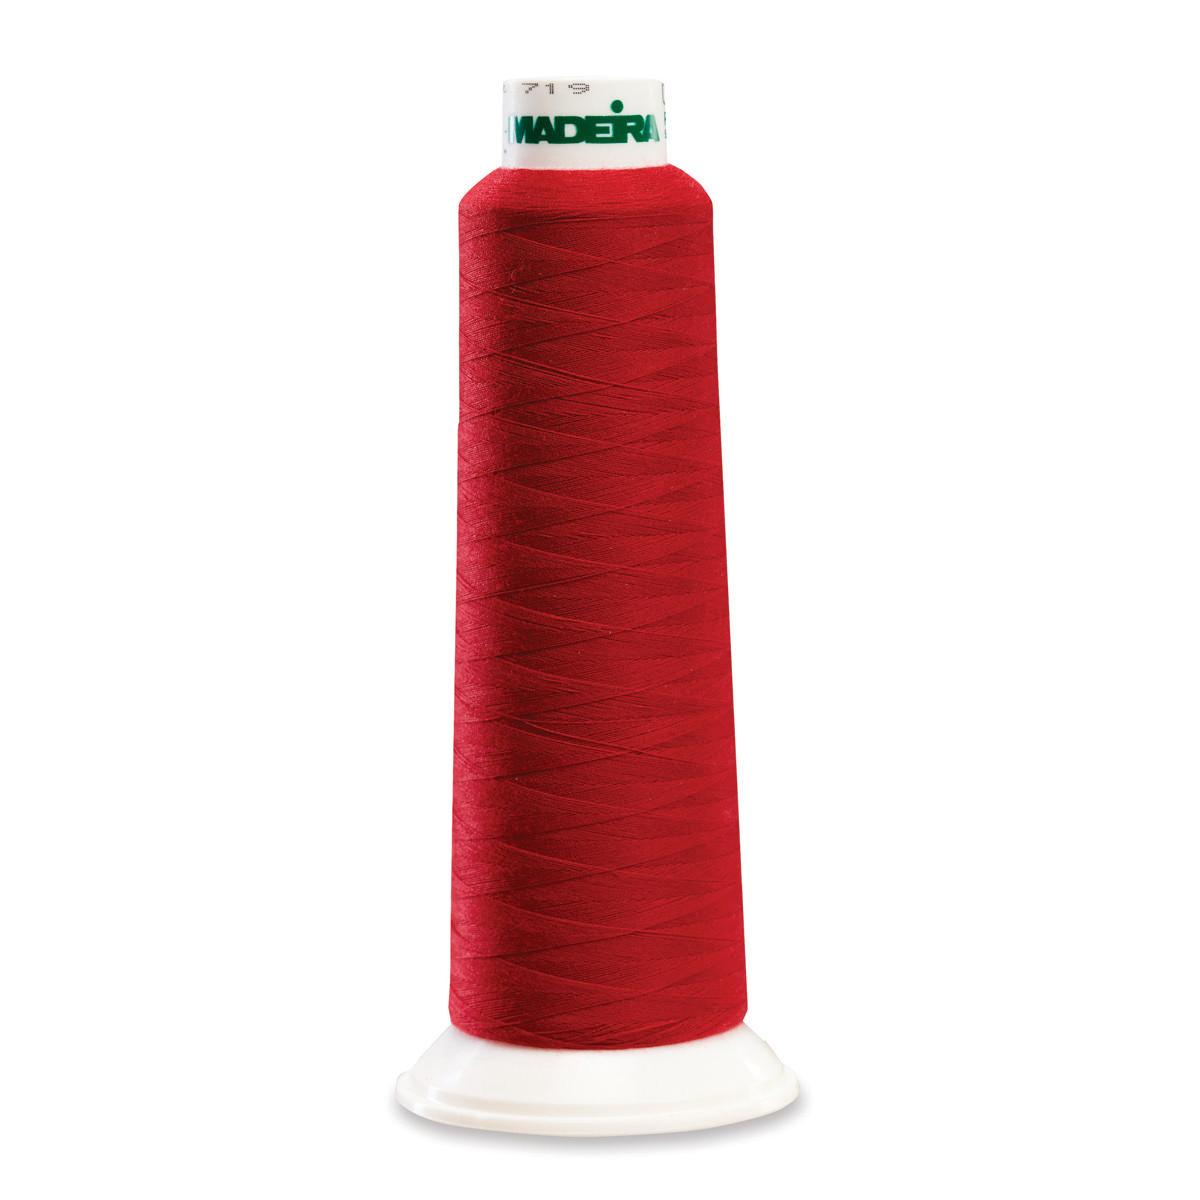 Madeira Serger Thread - Deep Red